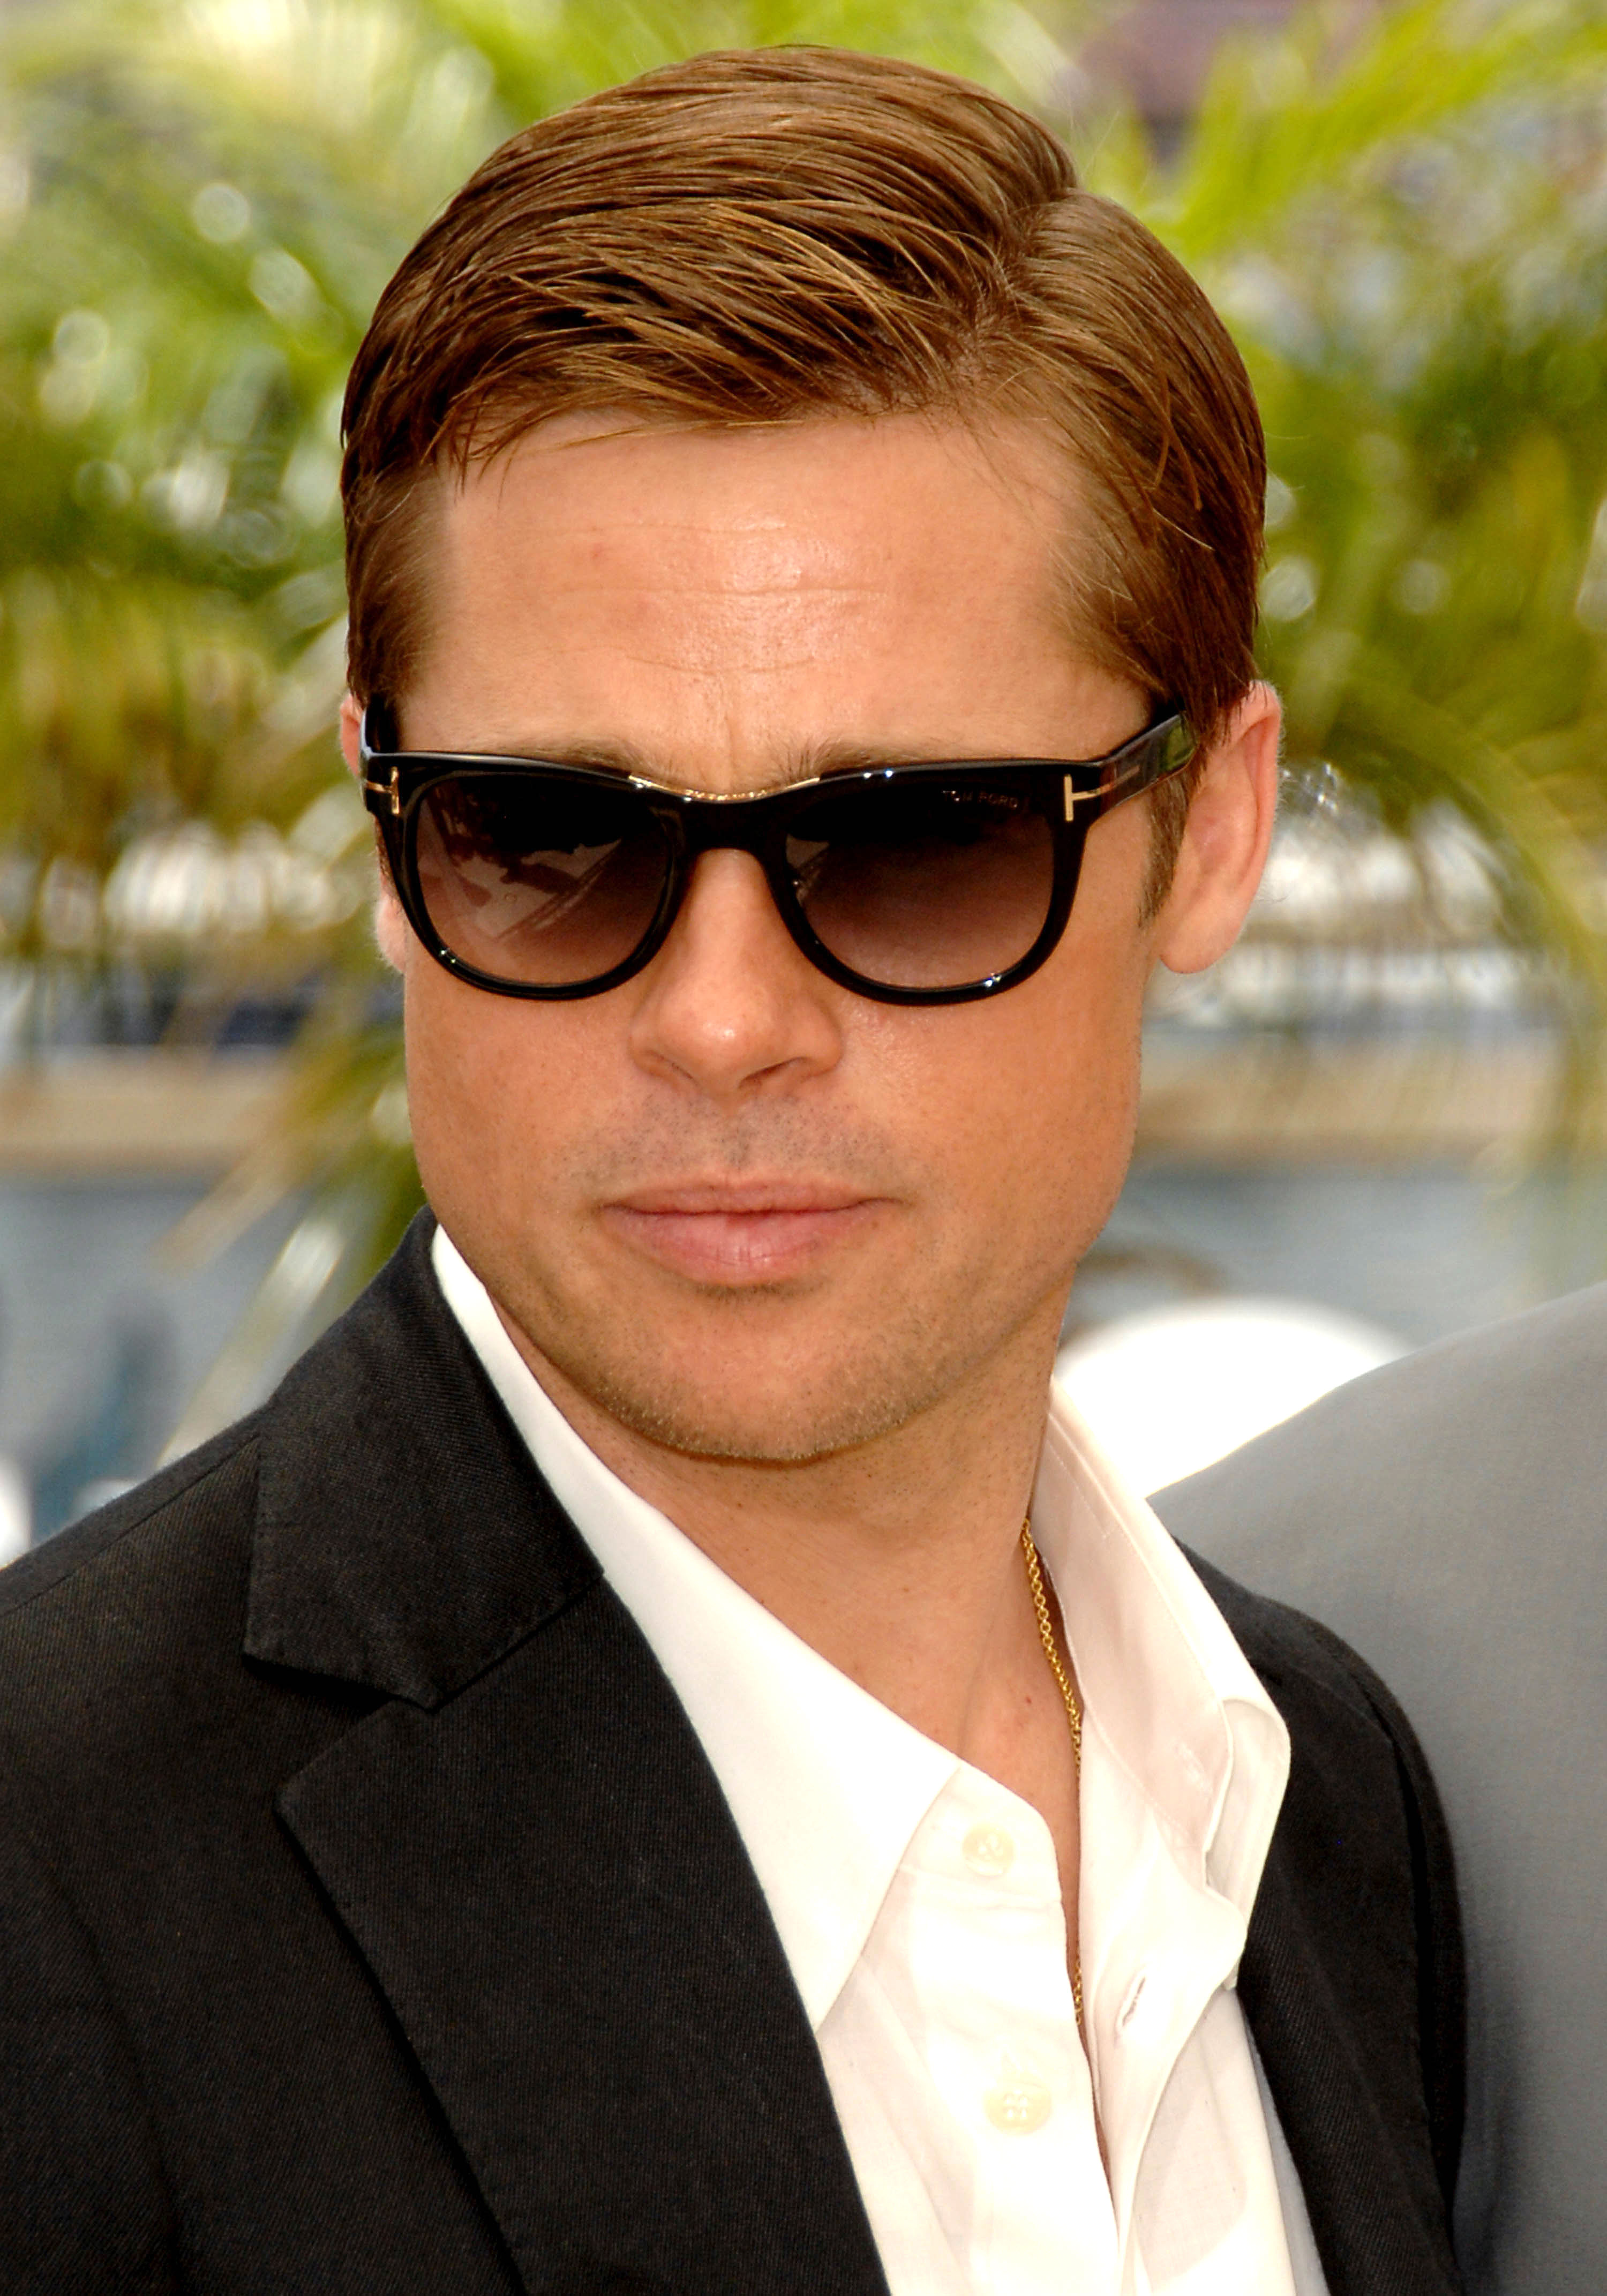 brad-pitt-short hair - Proving he cleans up nicely, the Oceans Thirteen star sported a dapper slicked-back style at the 2007 Cannes Film Festival.